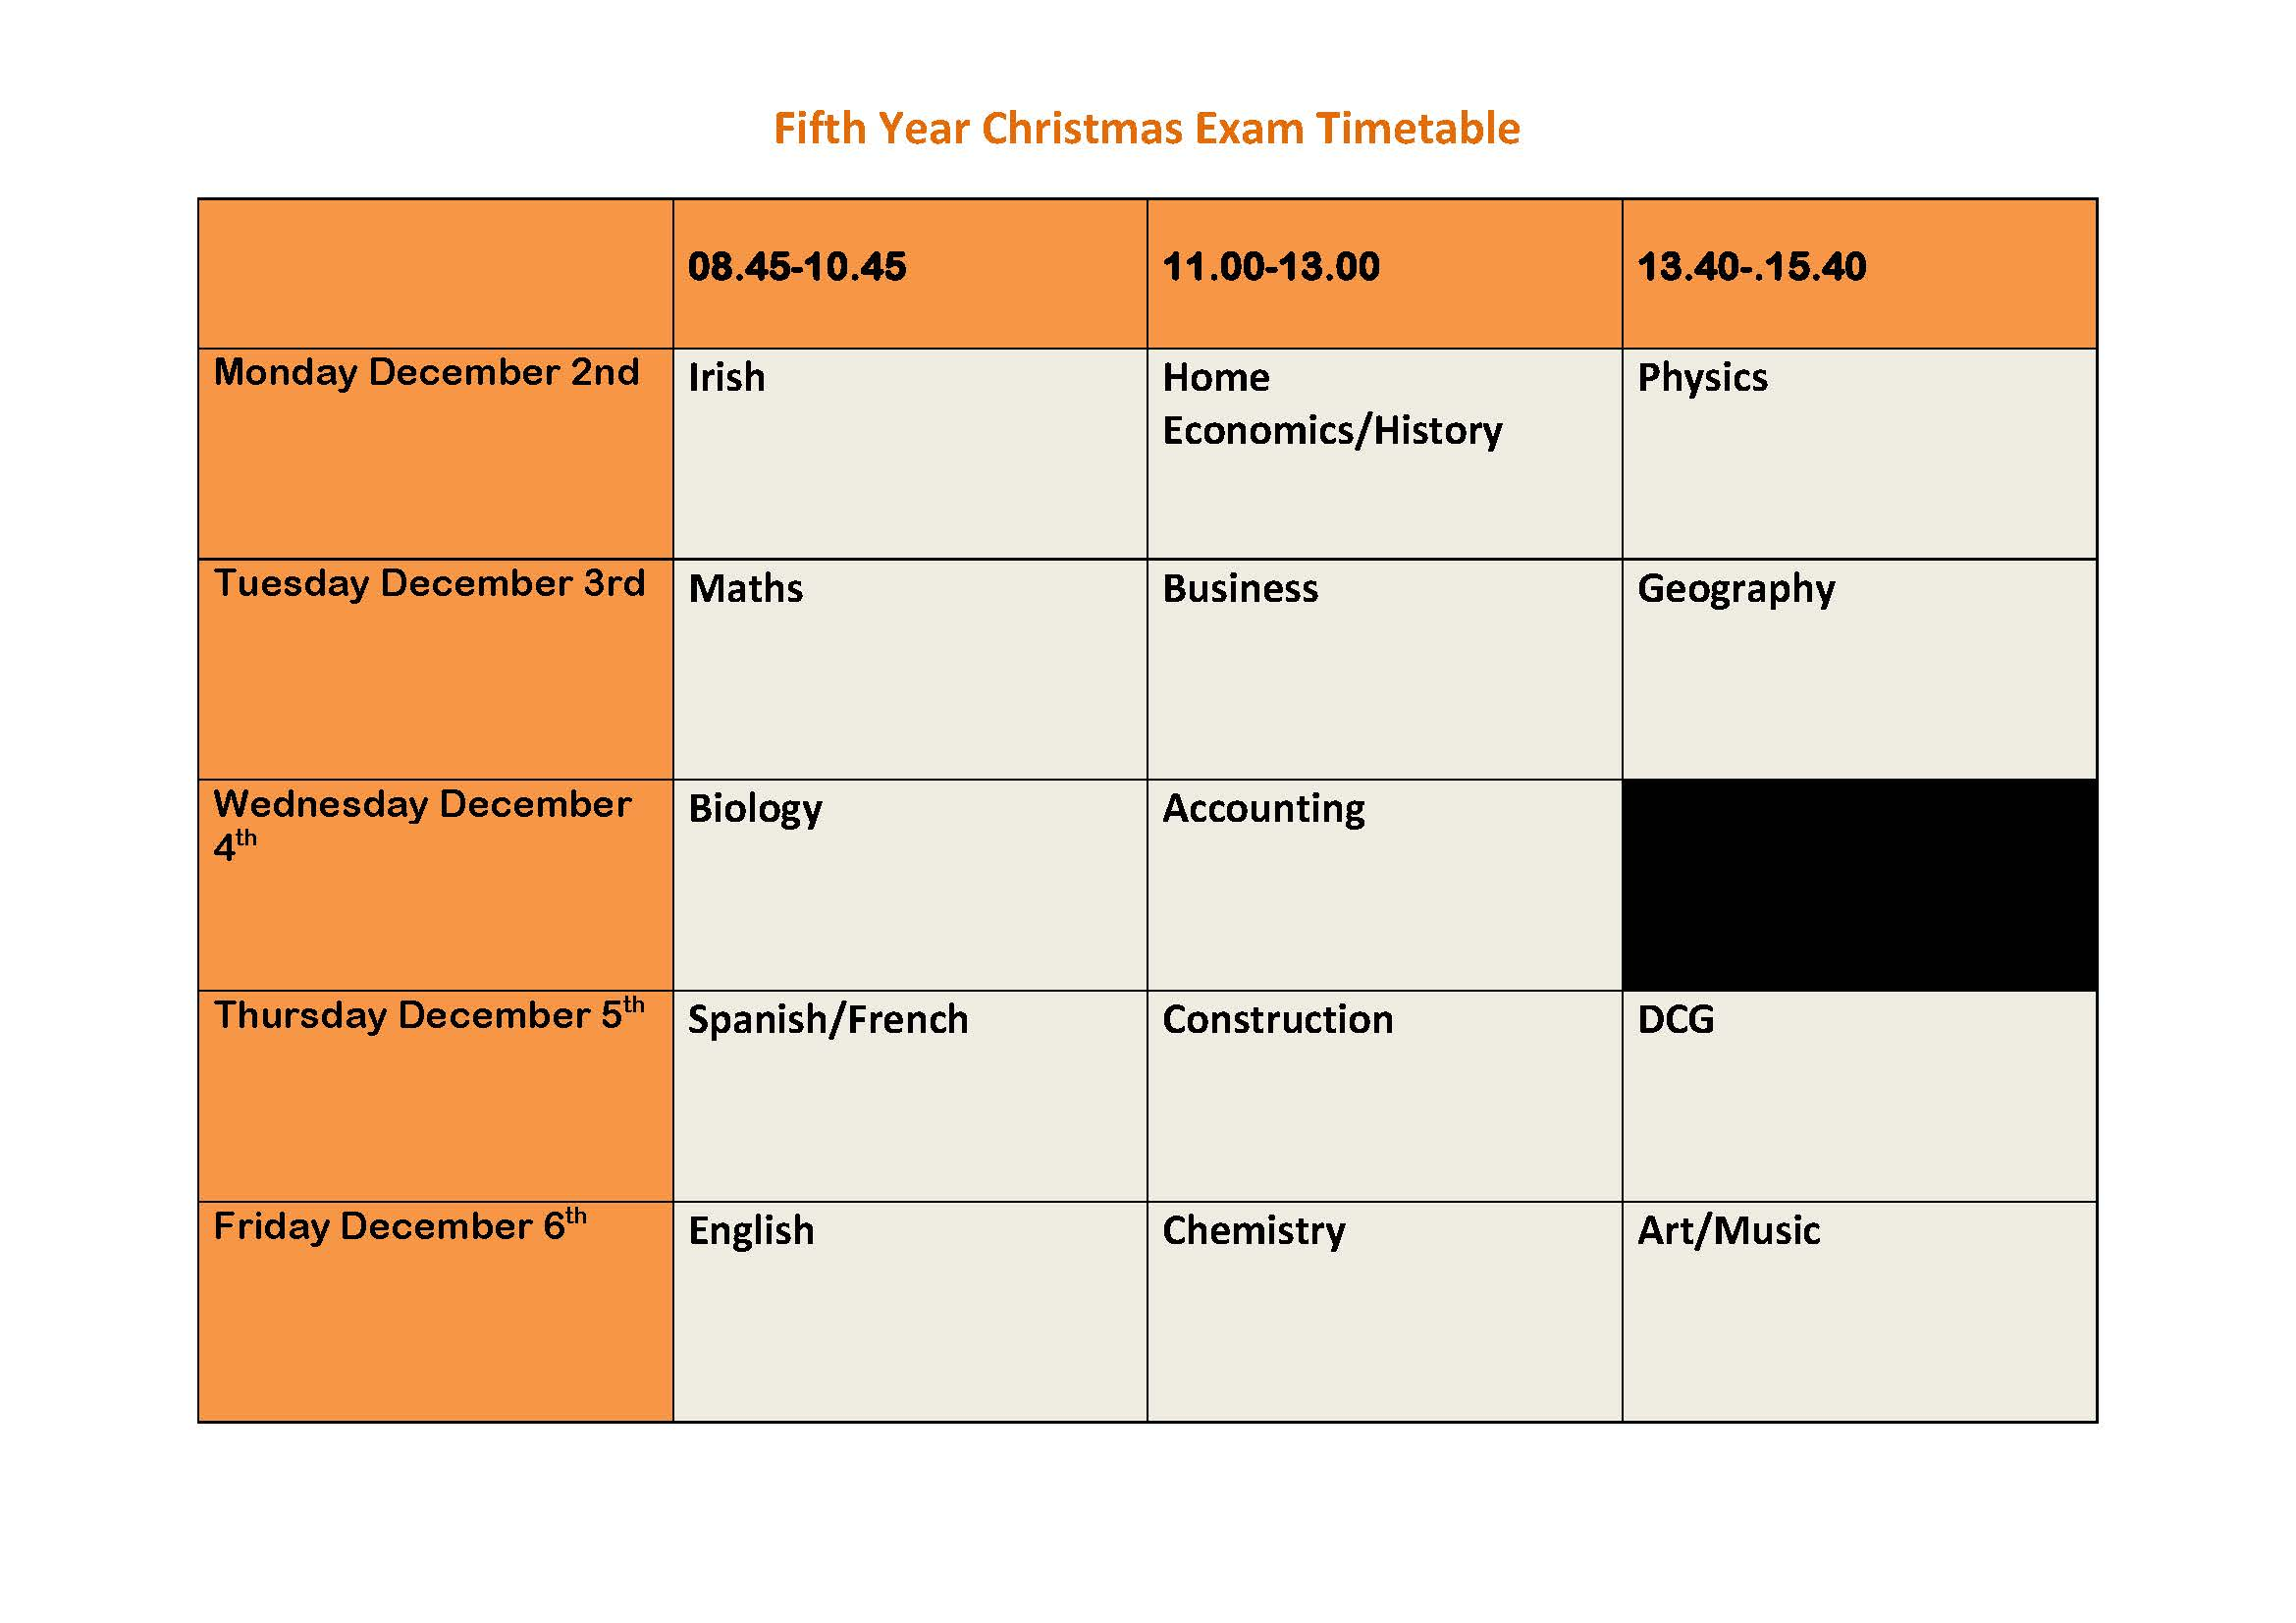 Fifth Year Christmas Exam Timetable